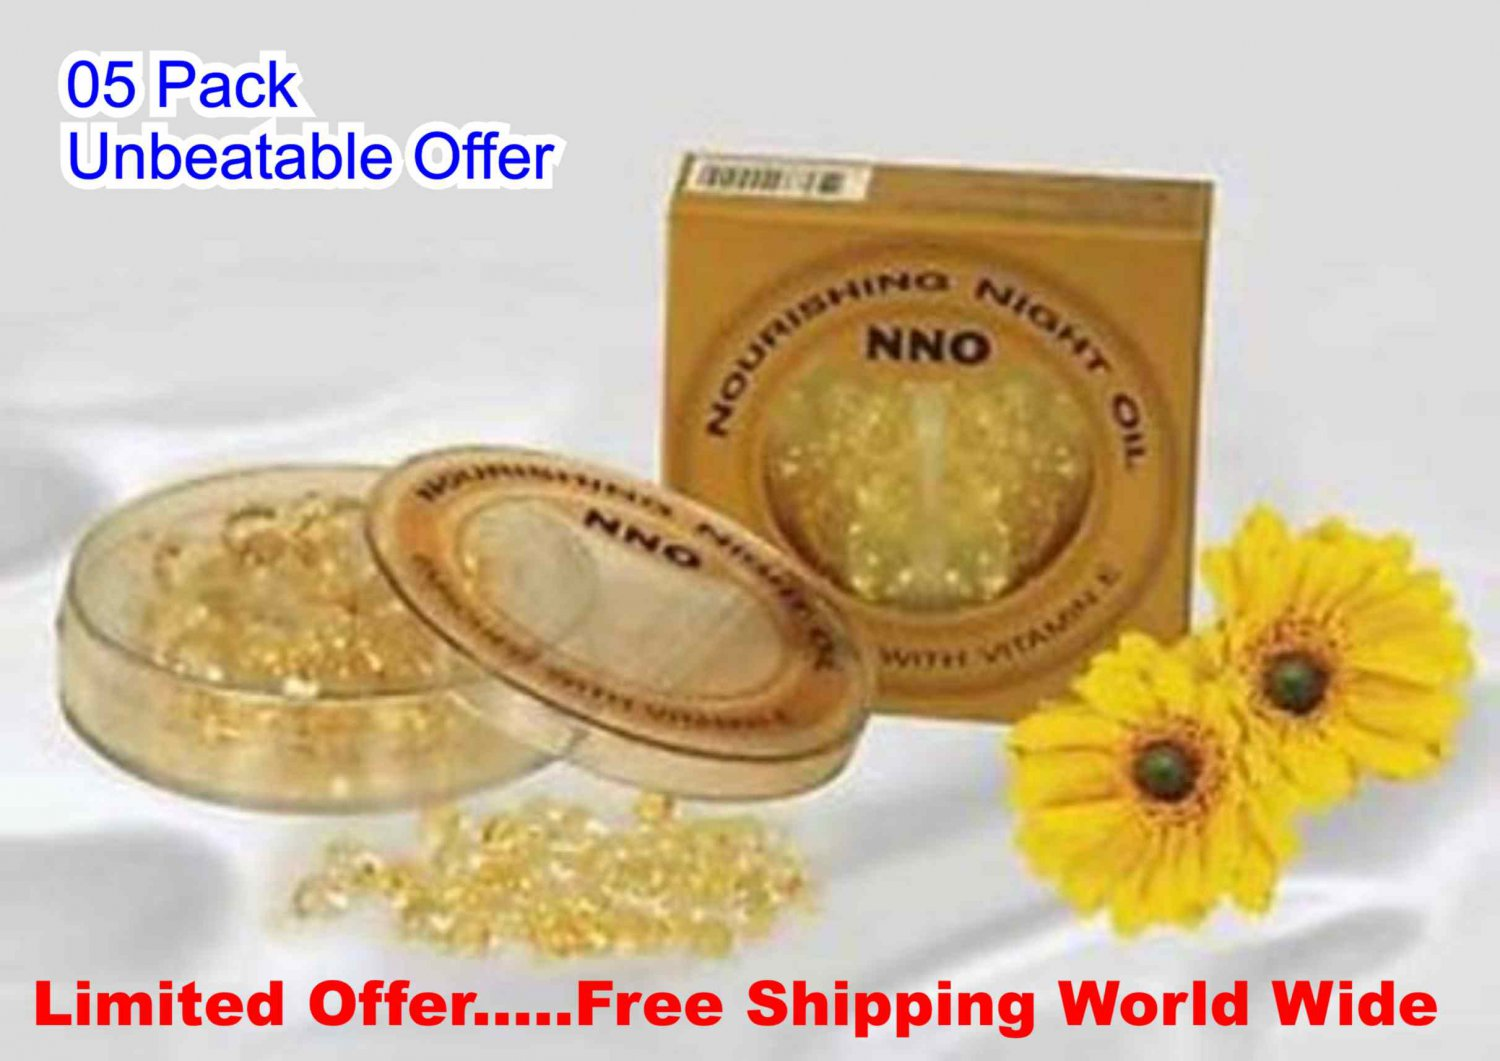 5Box X 30 Capsules,NNO-Nourishing Night Oil Gold Jojoba Skin Balancing,Vitamin E